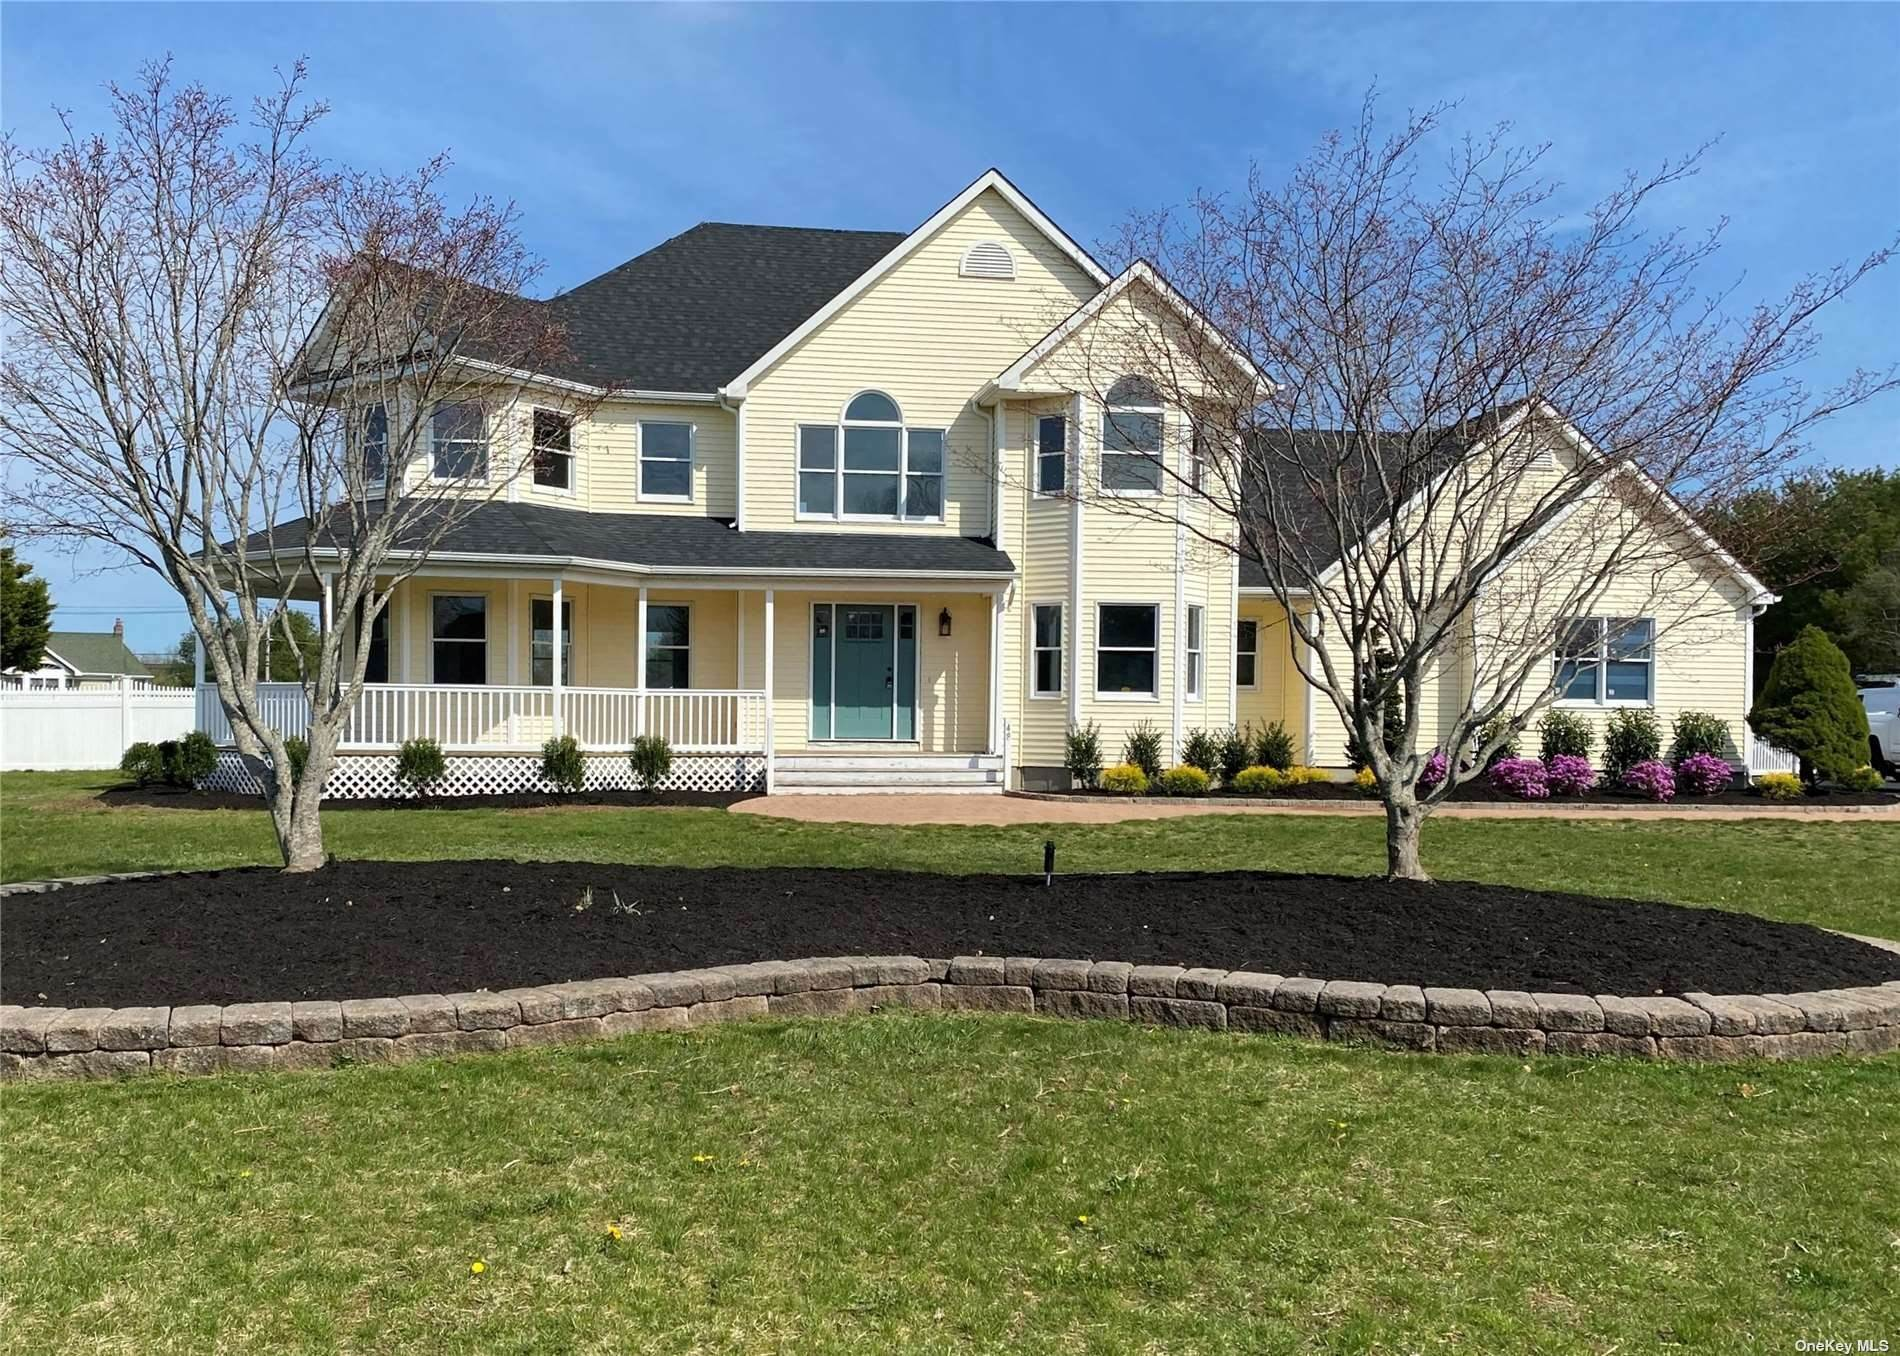 Residential for Sale at 48 Roberts Path Wading River, New York 11792 United States